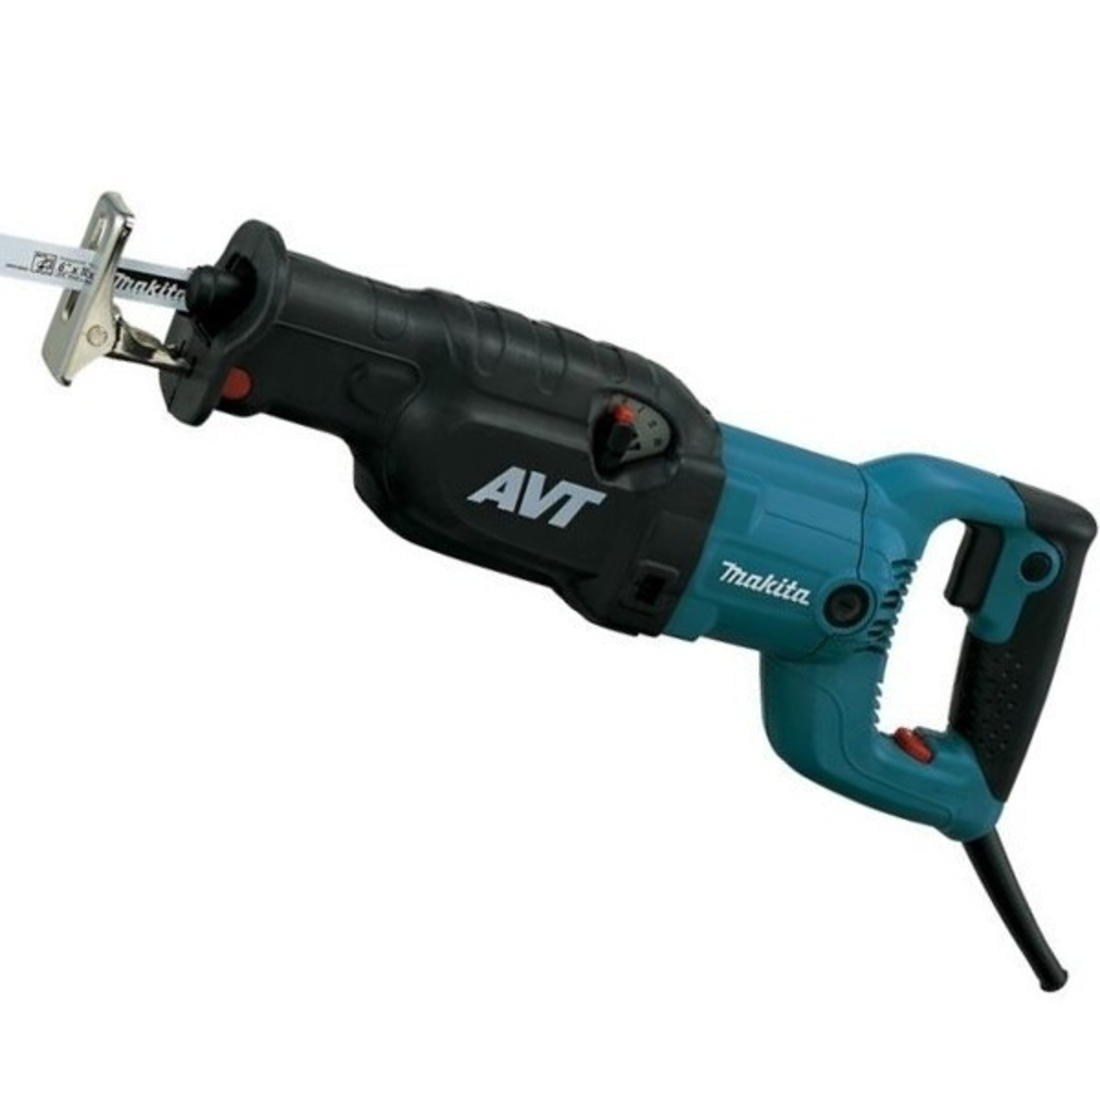 Reciprocating Saw - Low Vibration